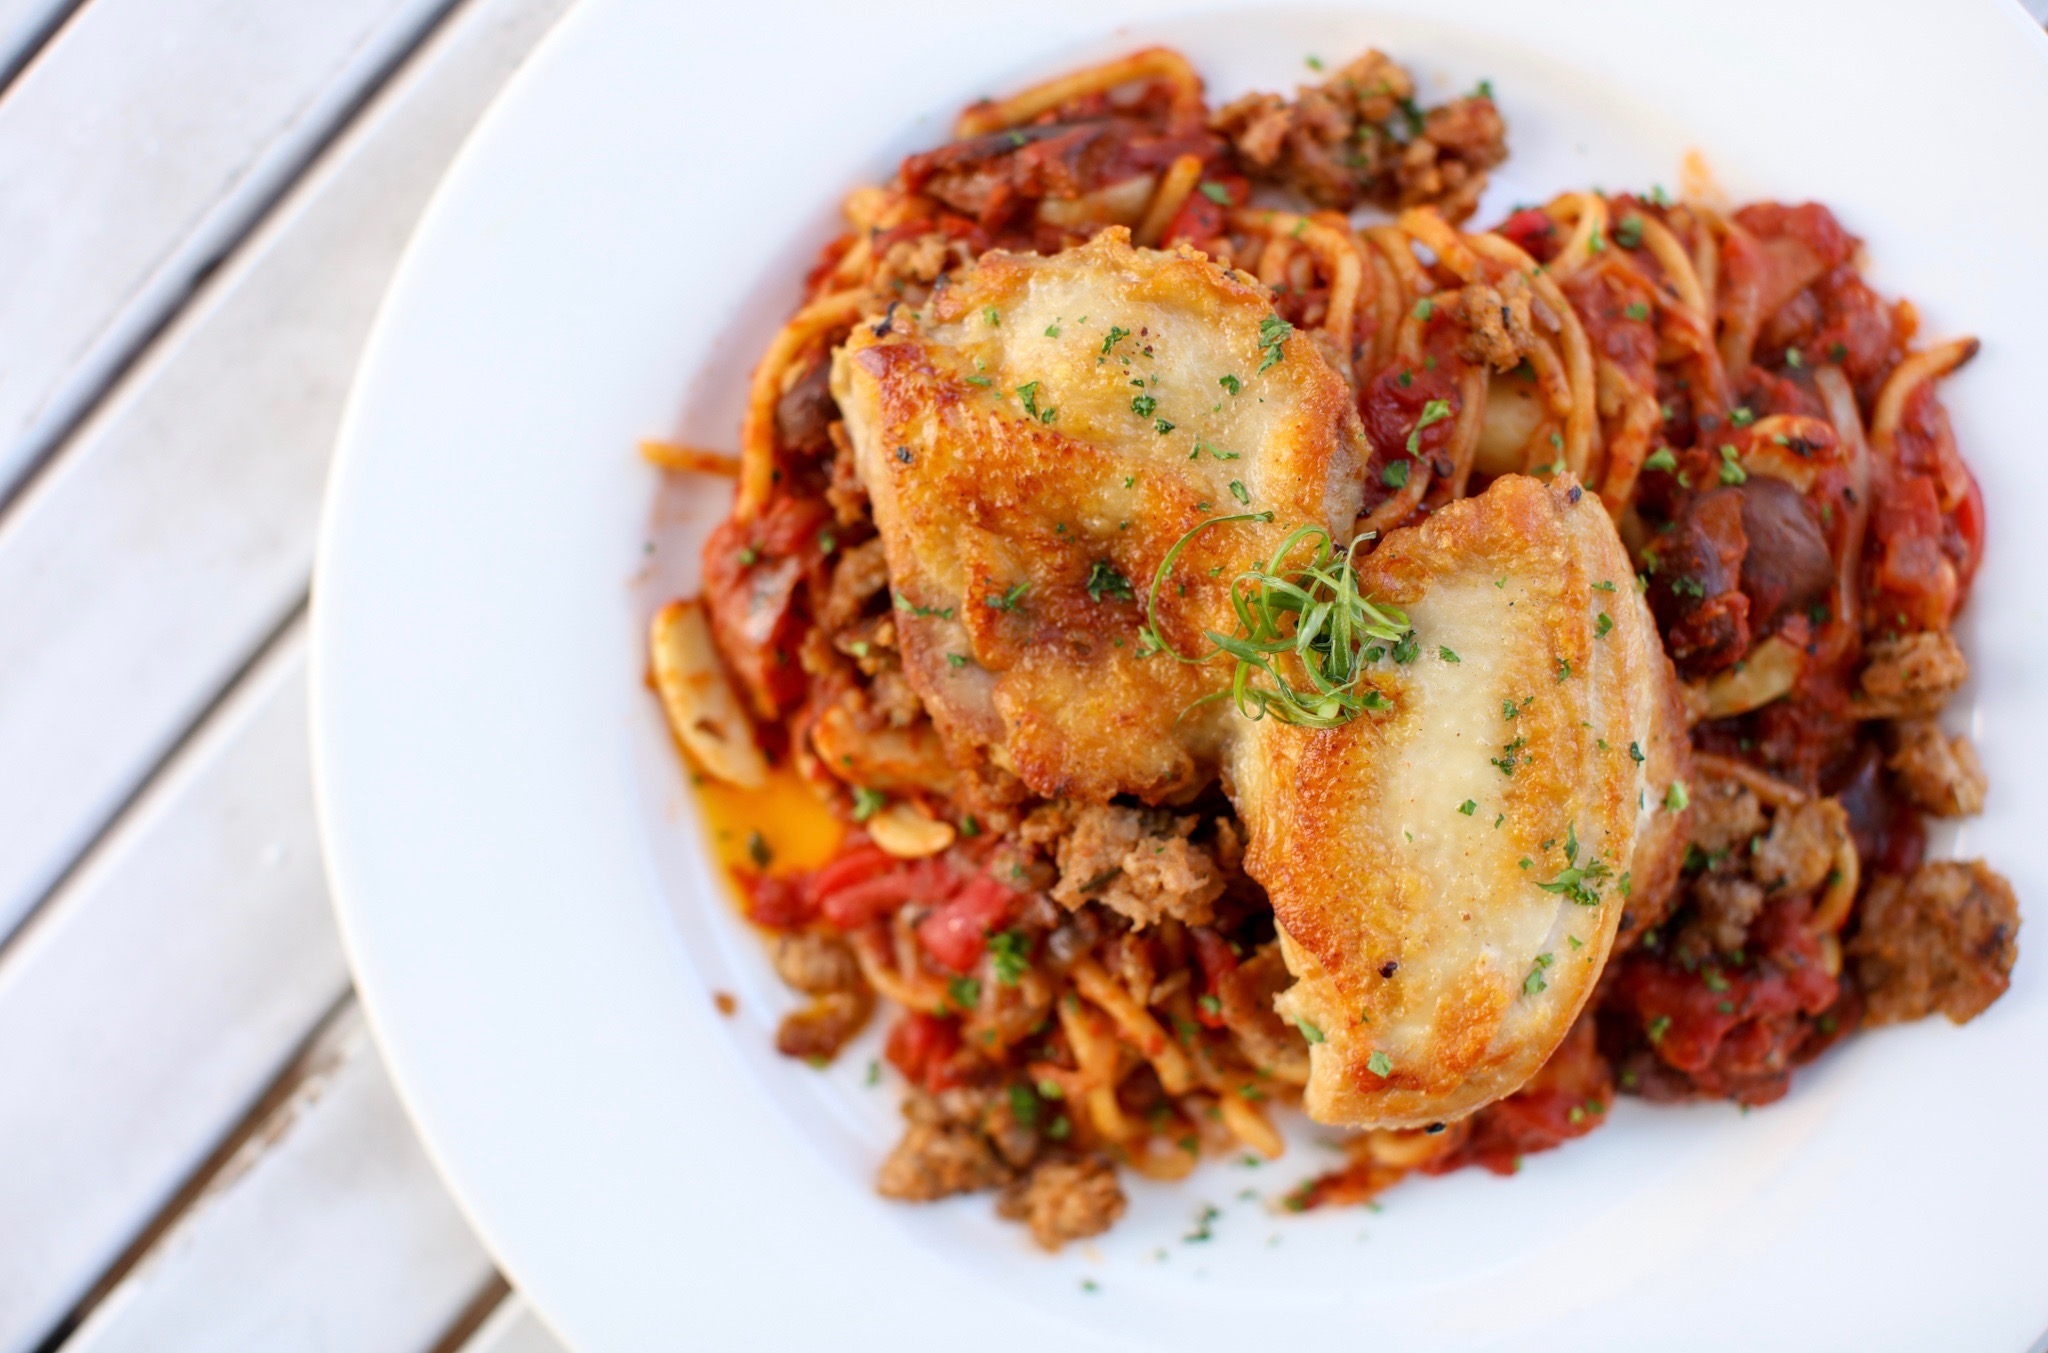 The chicken cacciatore from Juliet